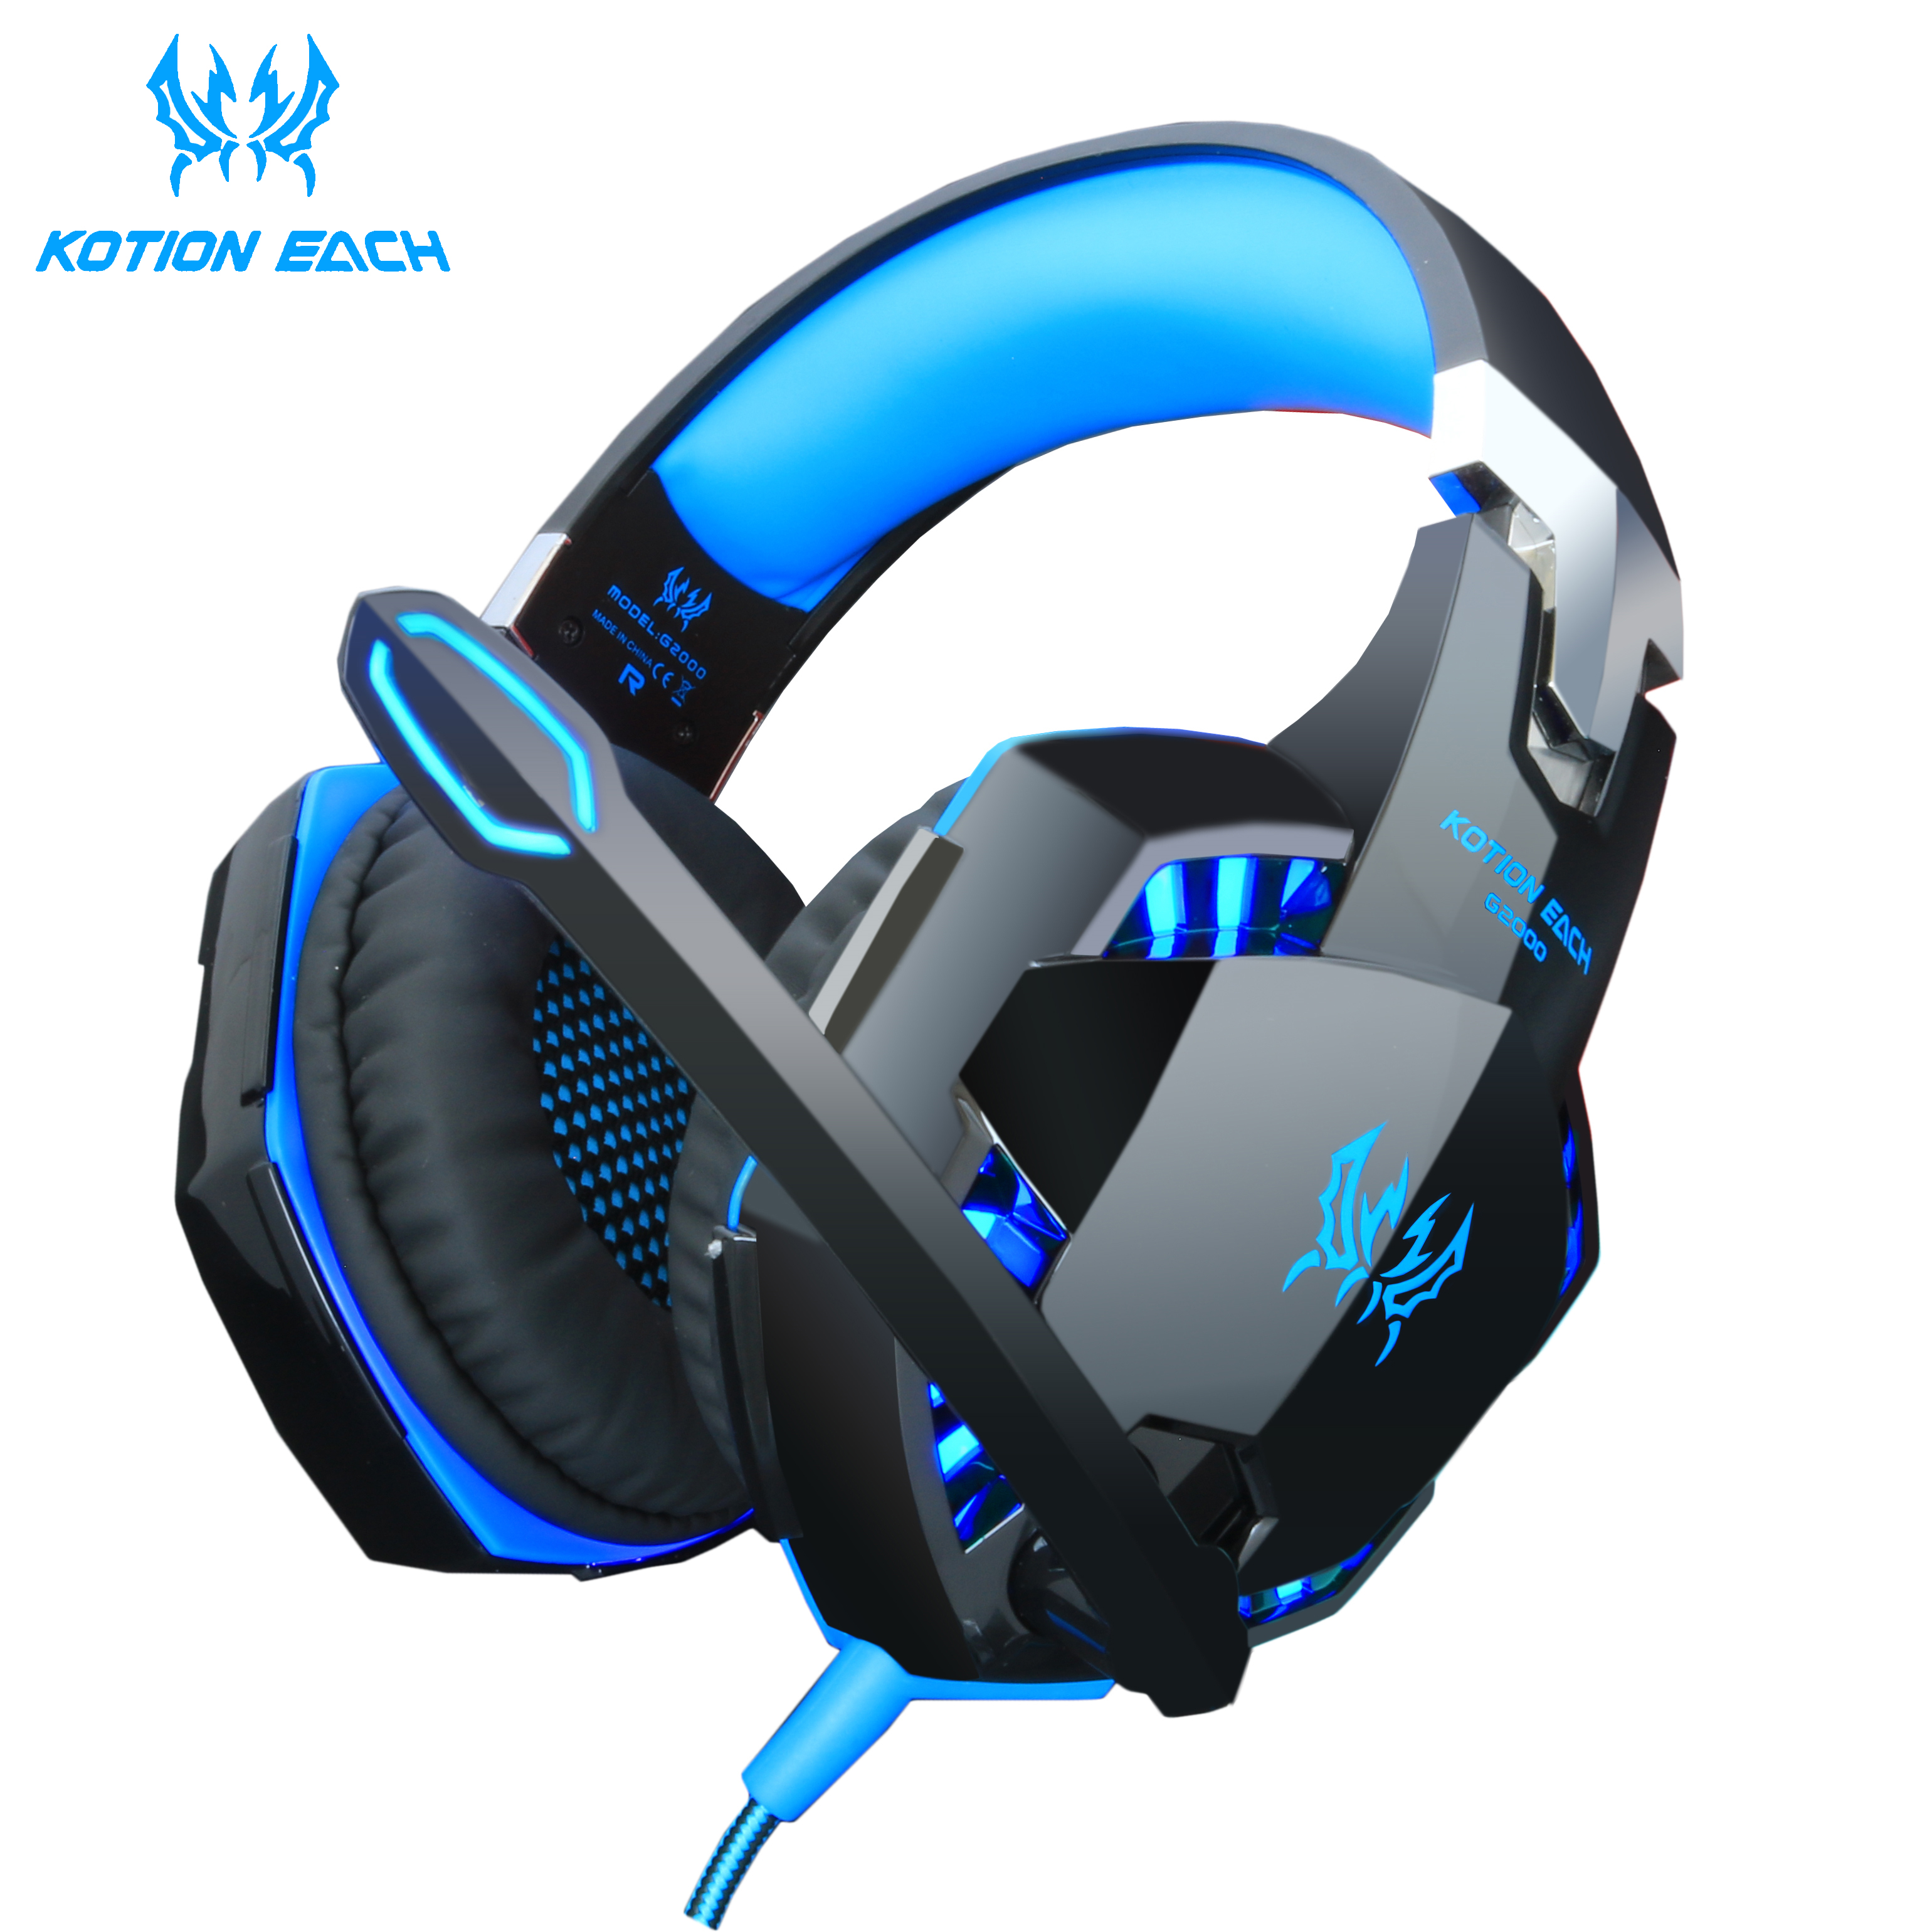 Headset over-ear Wired Game <font><b>Earphones</b></font> <font><b>Gaming</b></font> Headphones Deep bass Stereo Casque <font><b>with</b></font> <font><b>Microphone</b></font> for PS4 new xbox PC Laptop gamer image